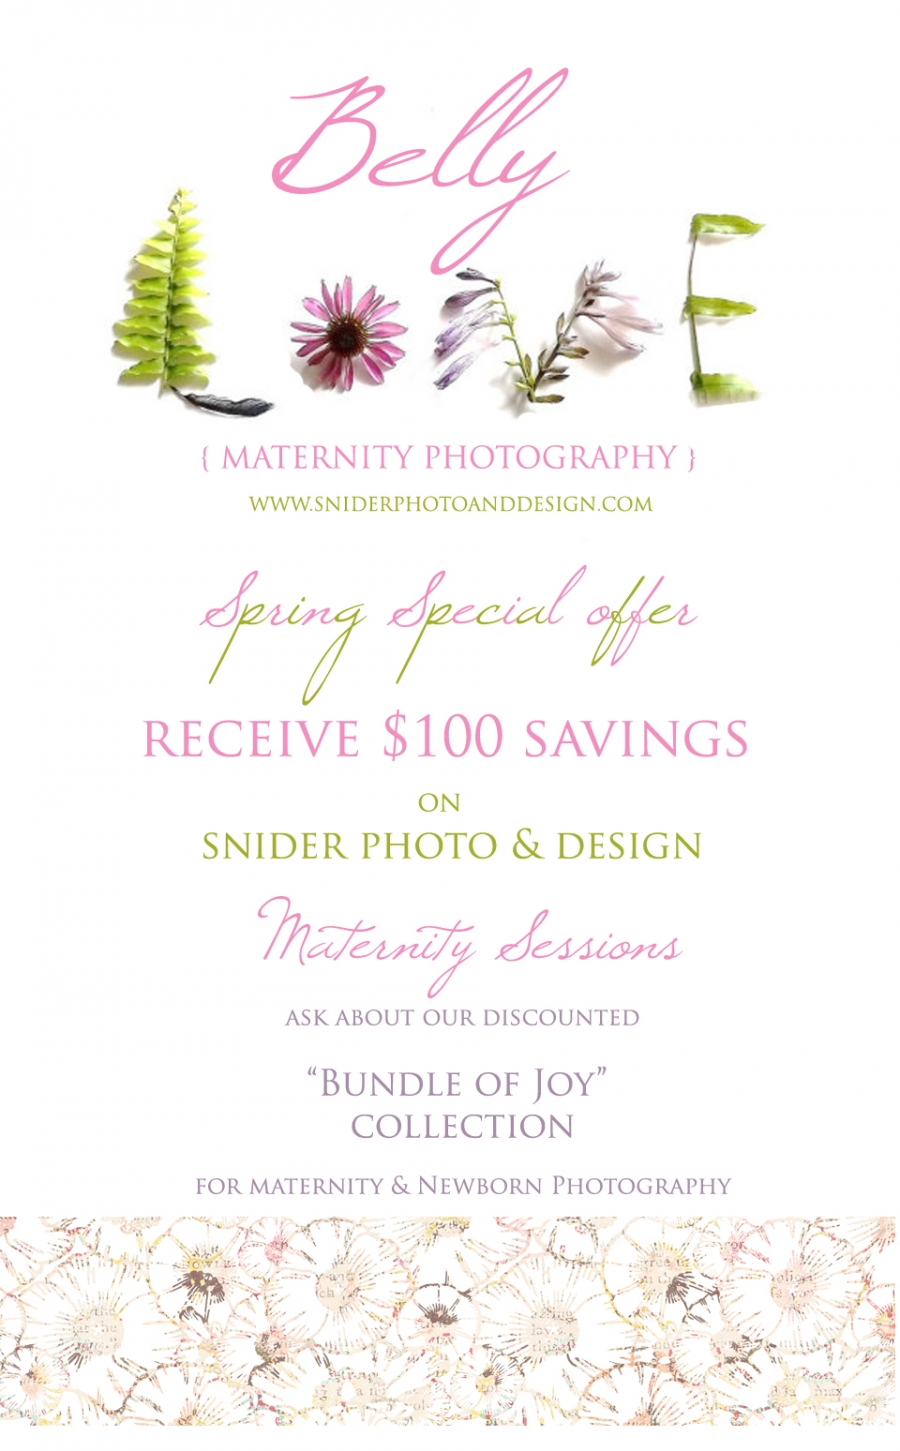 Orange County Maternity Spring Special offer